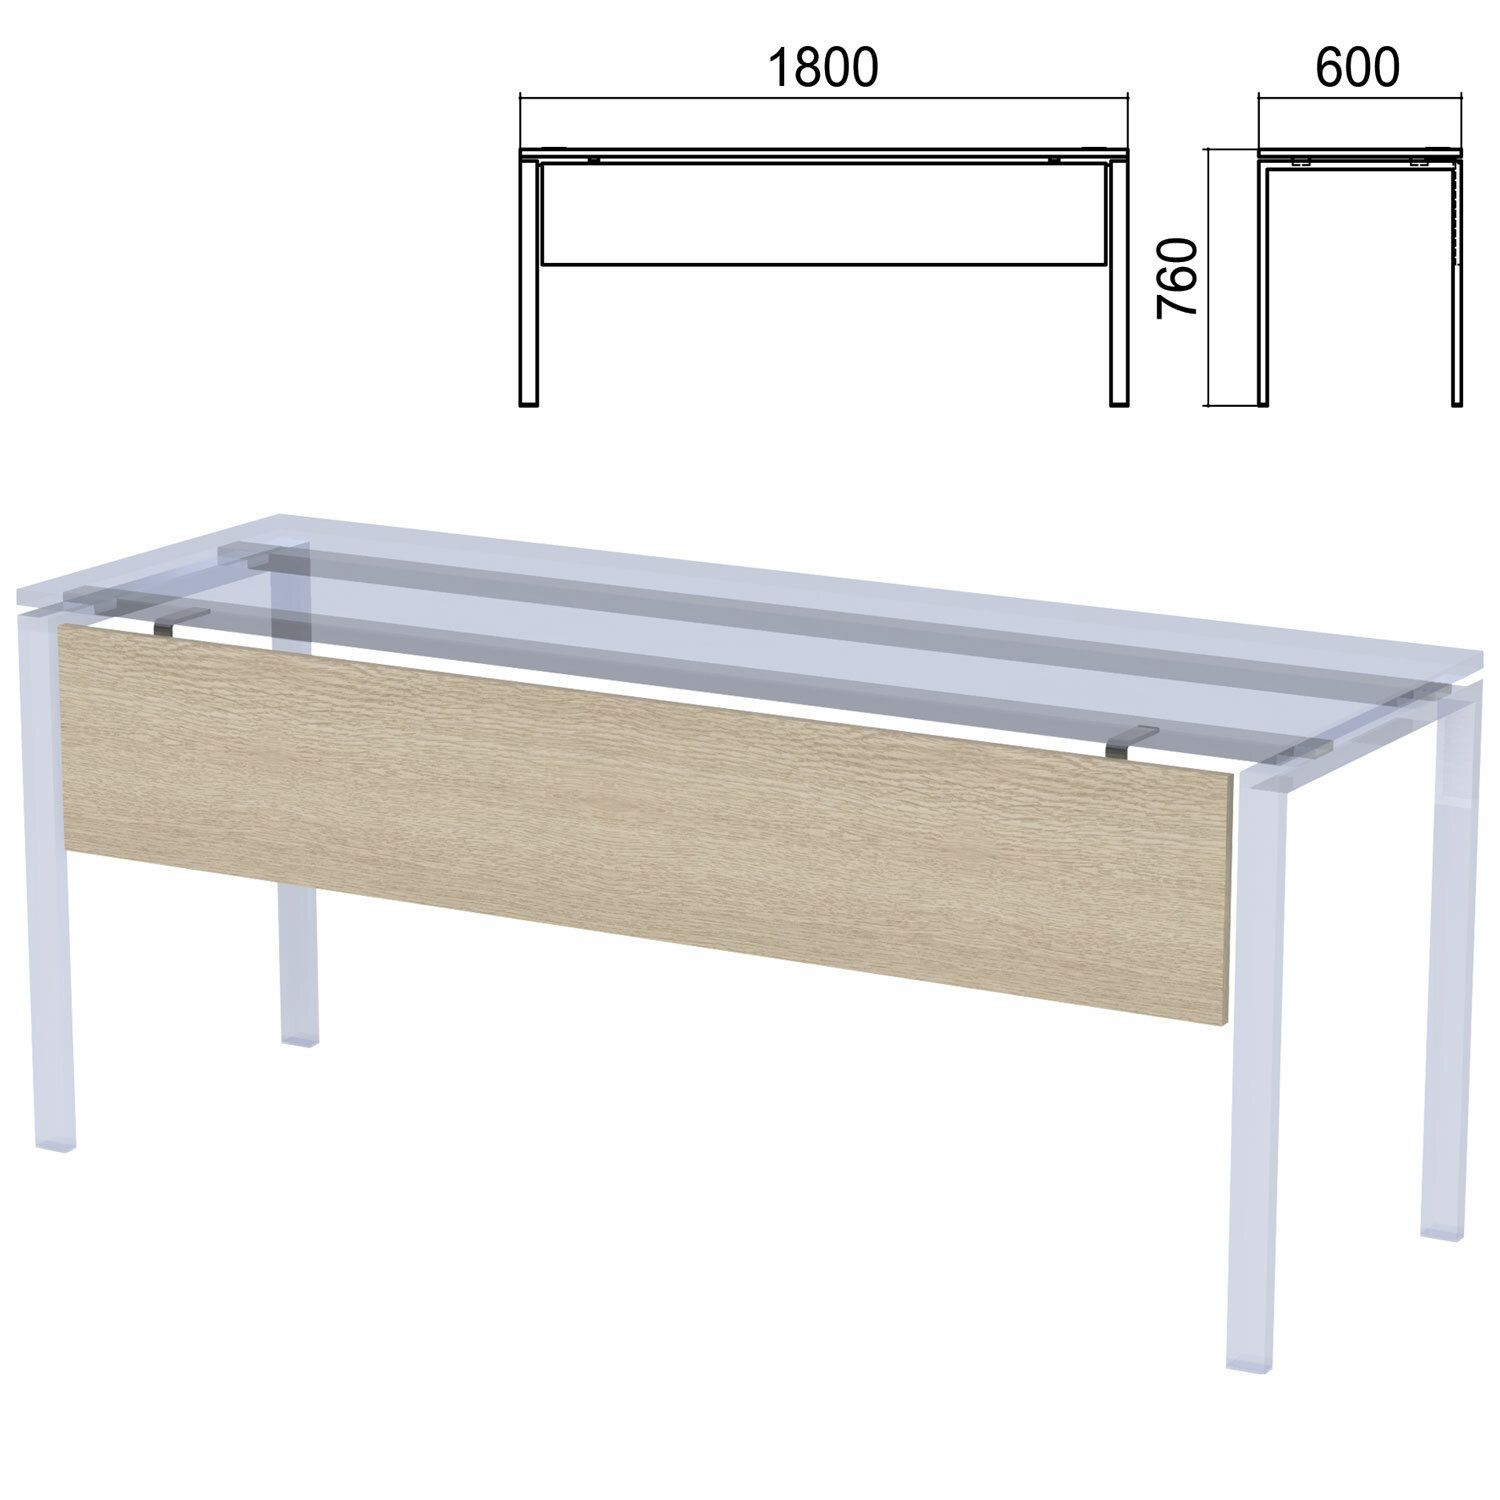 "Drawer for tables on metal frame ""Argo"", 1800 mm wide, ash-tree shimo"